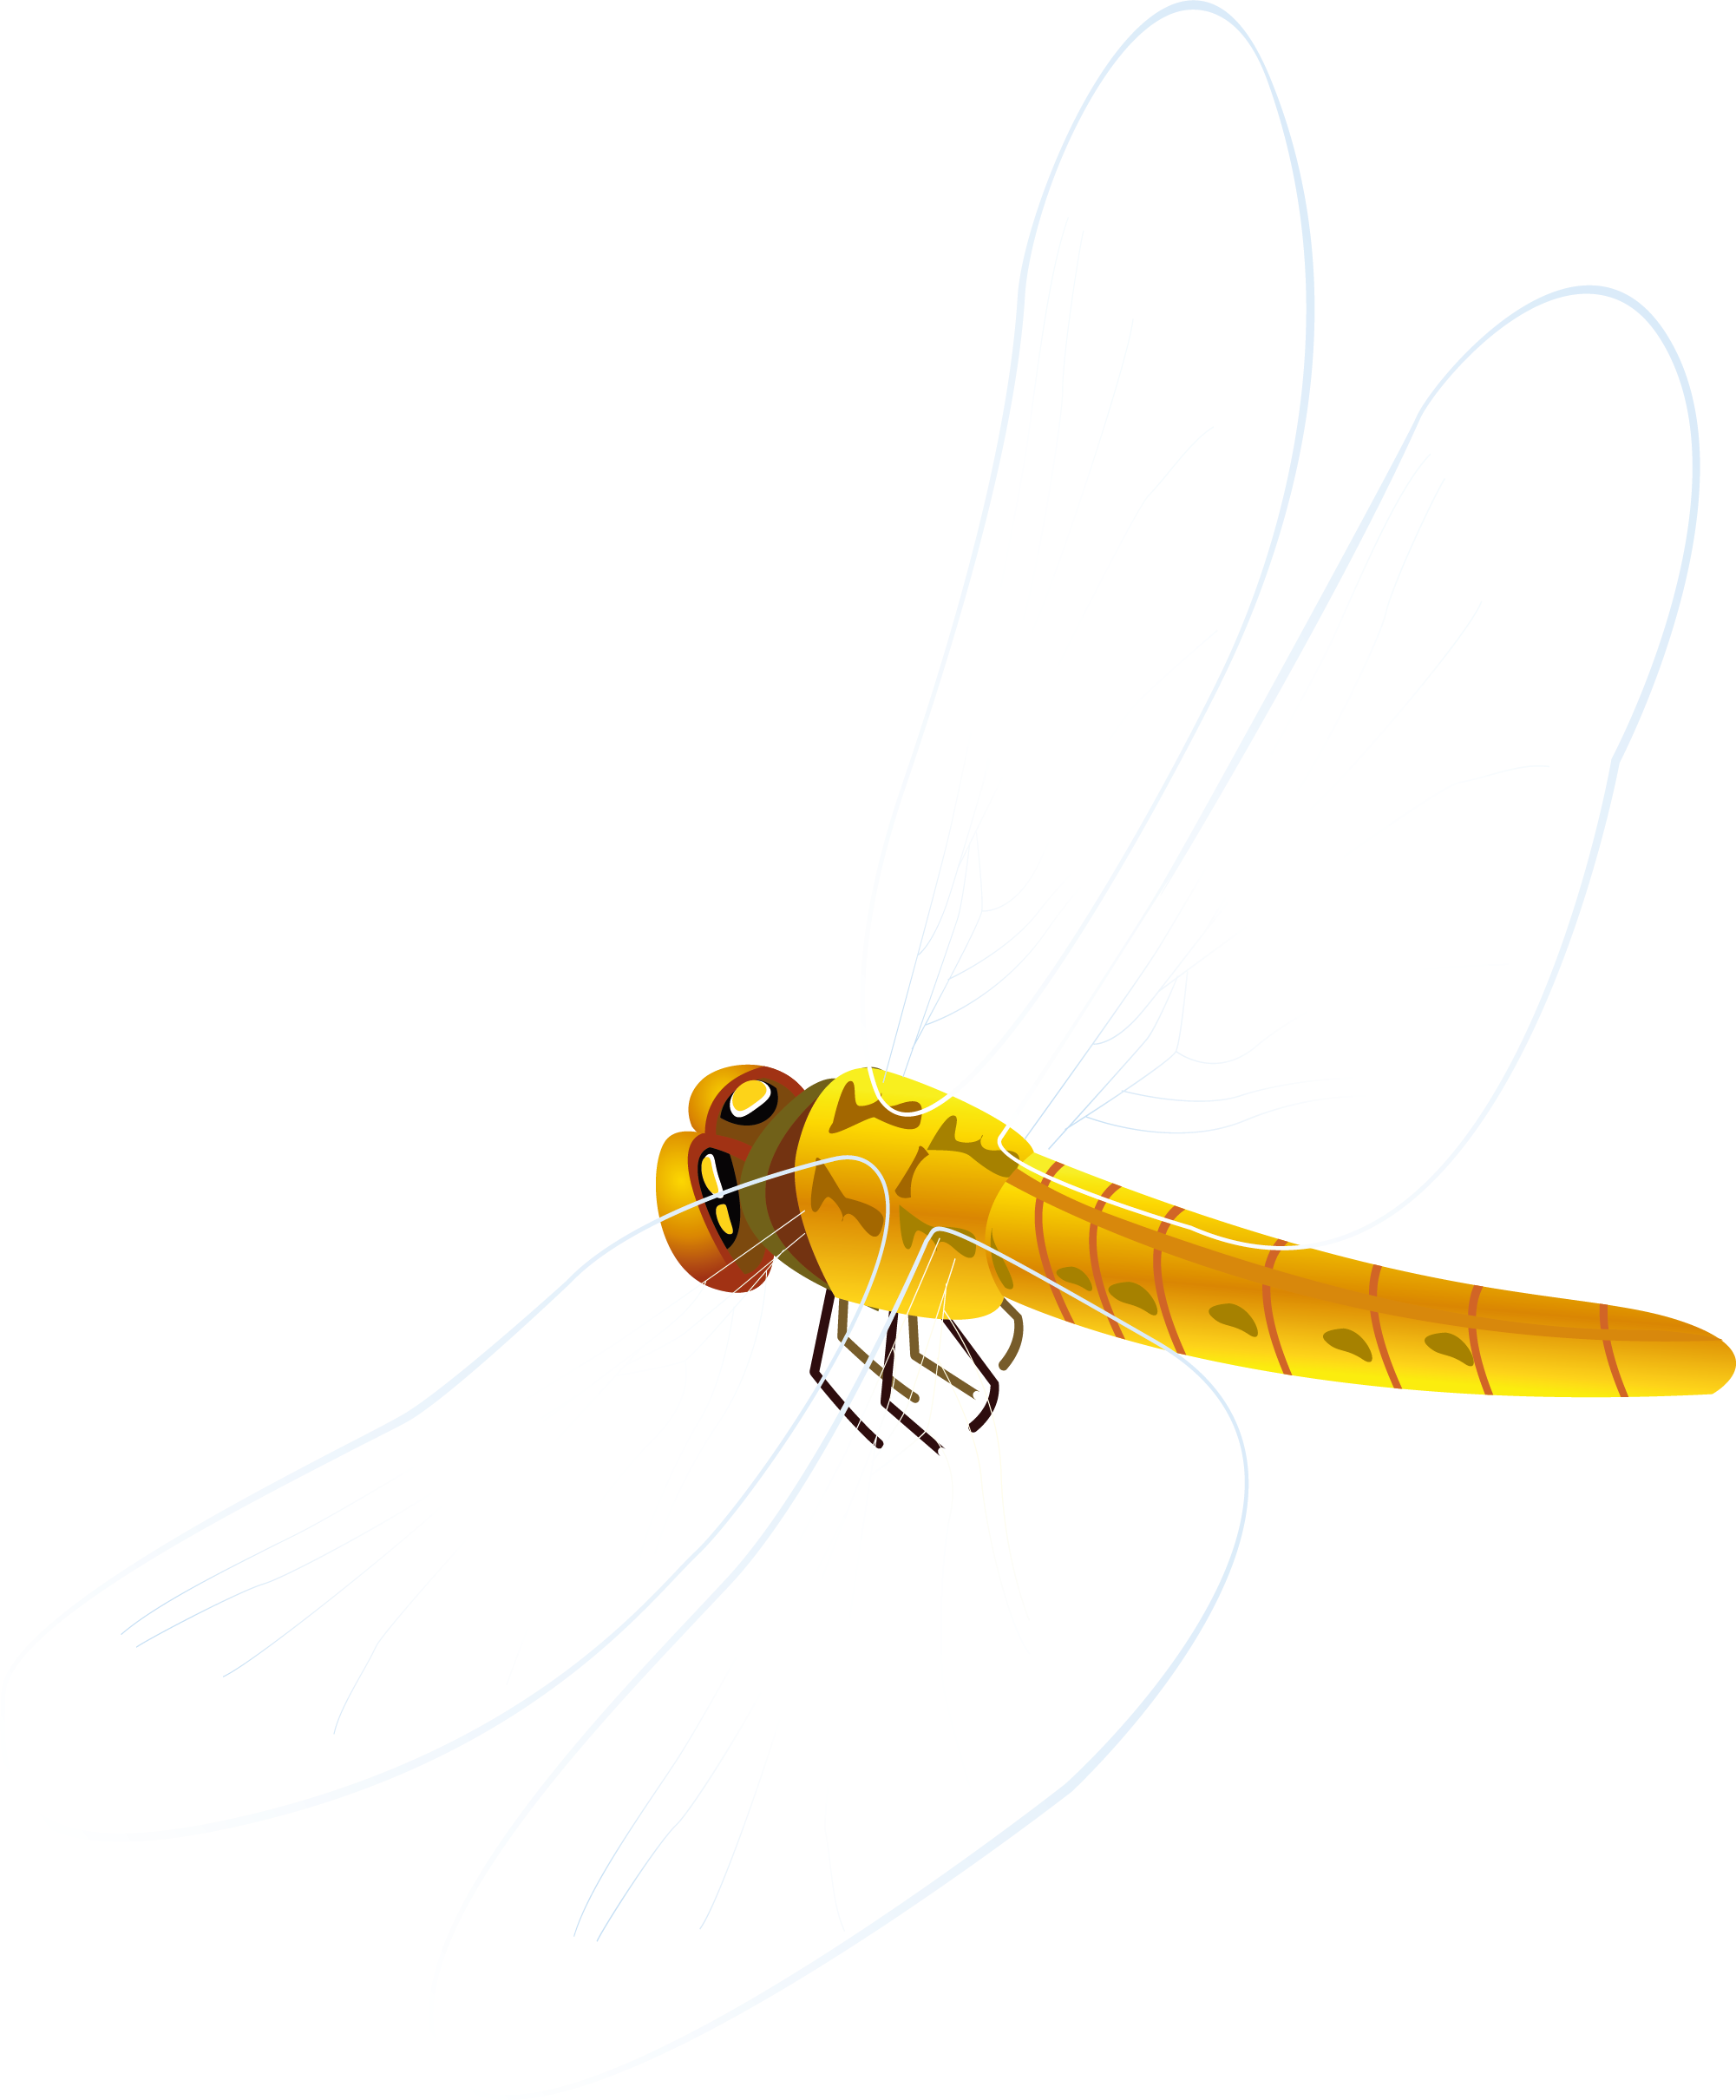 Dragonfly transparent orange. Insect yellow pollinator pest